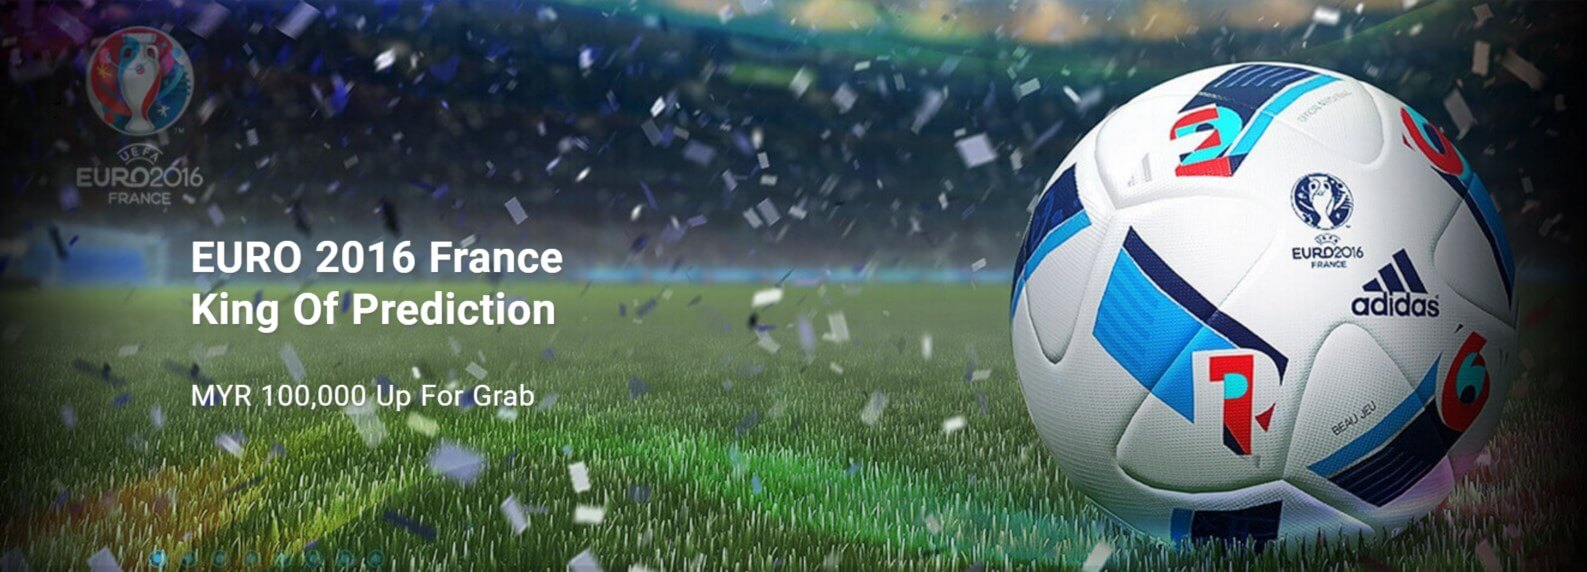 4Dresult 2016 Euro King Of Prediction Promotion